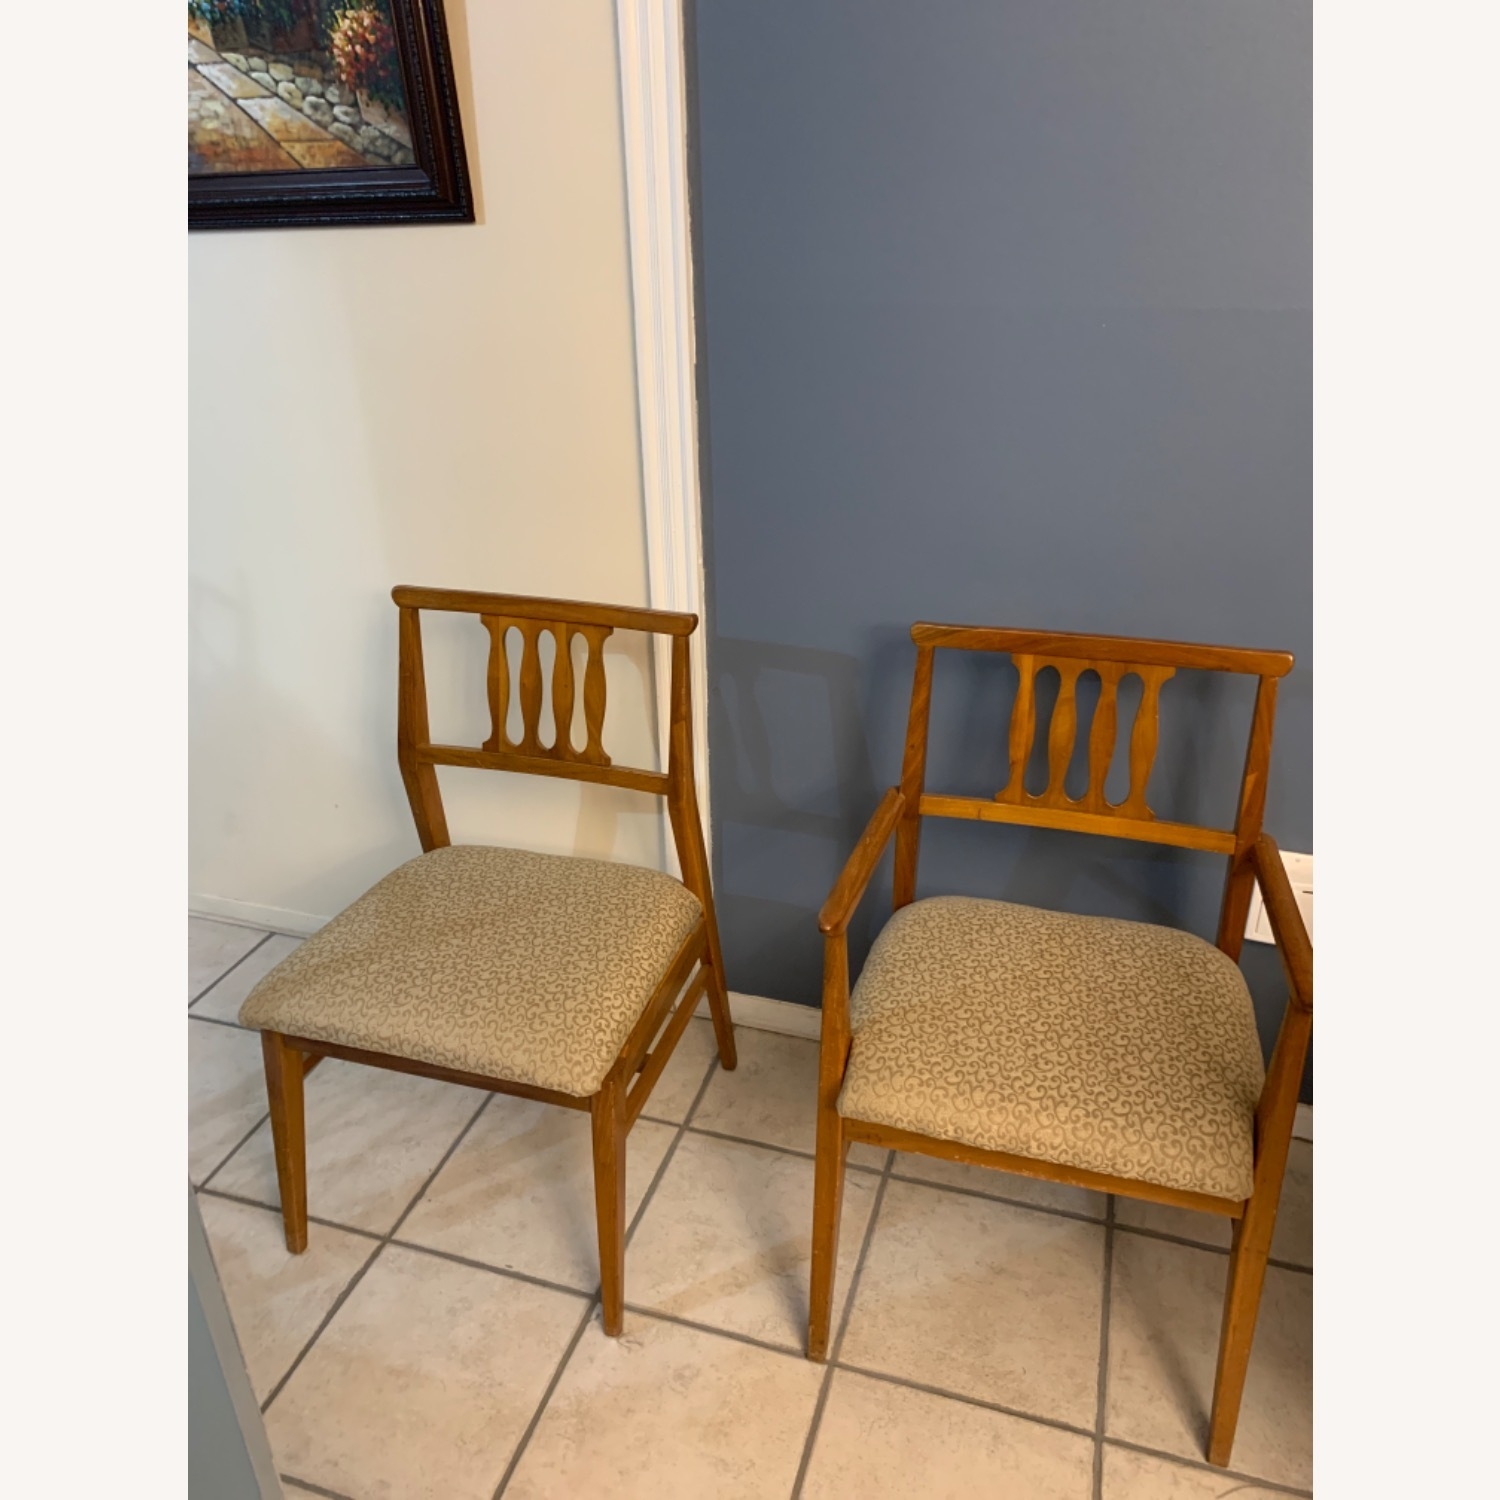 Hickory Furniture Company Dining Chair Set - image-4